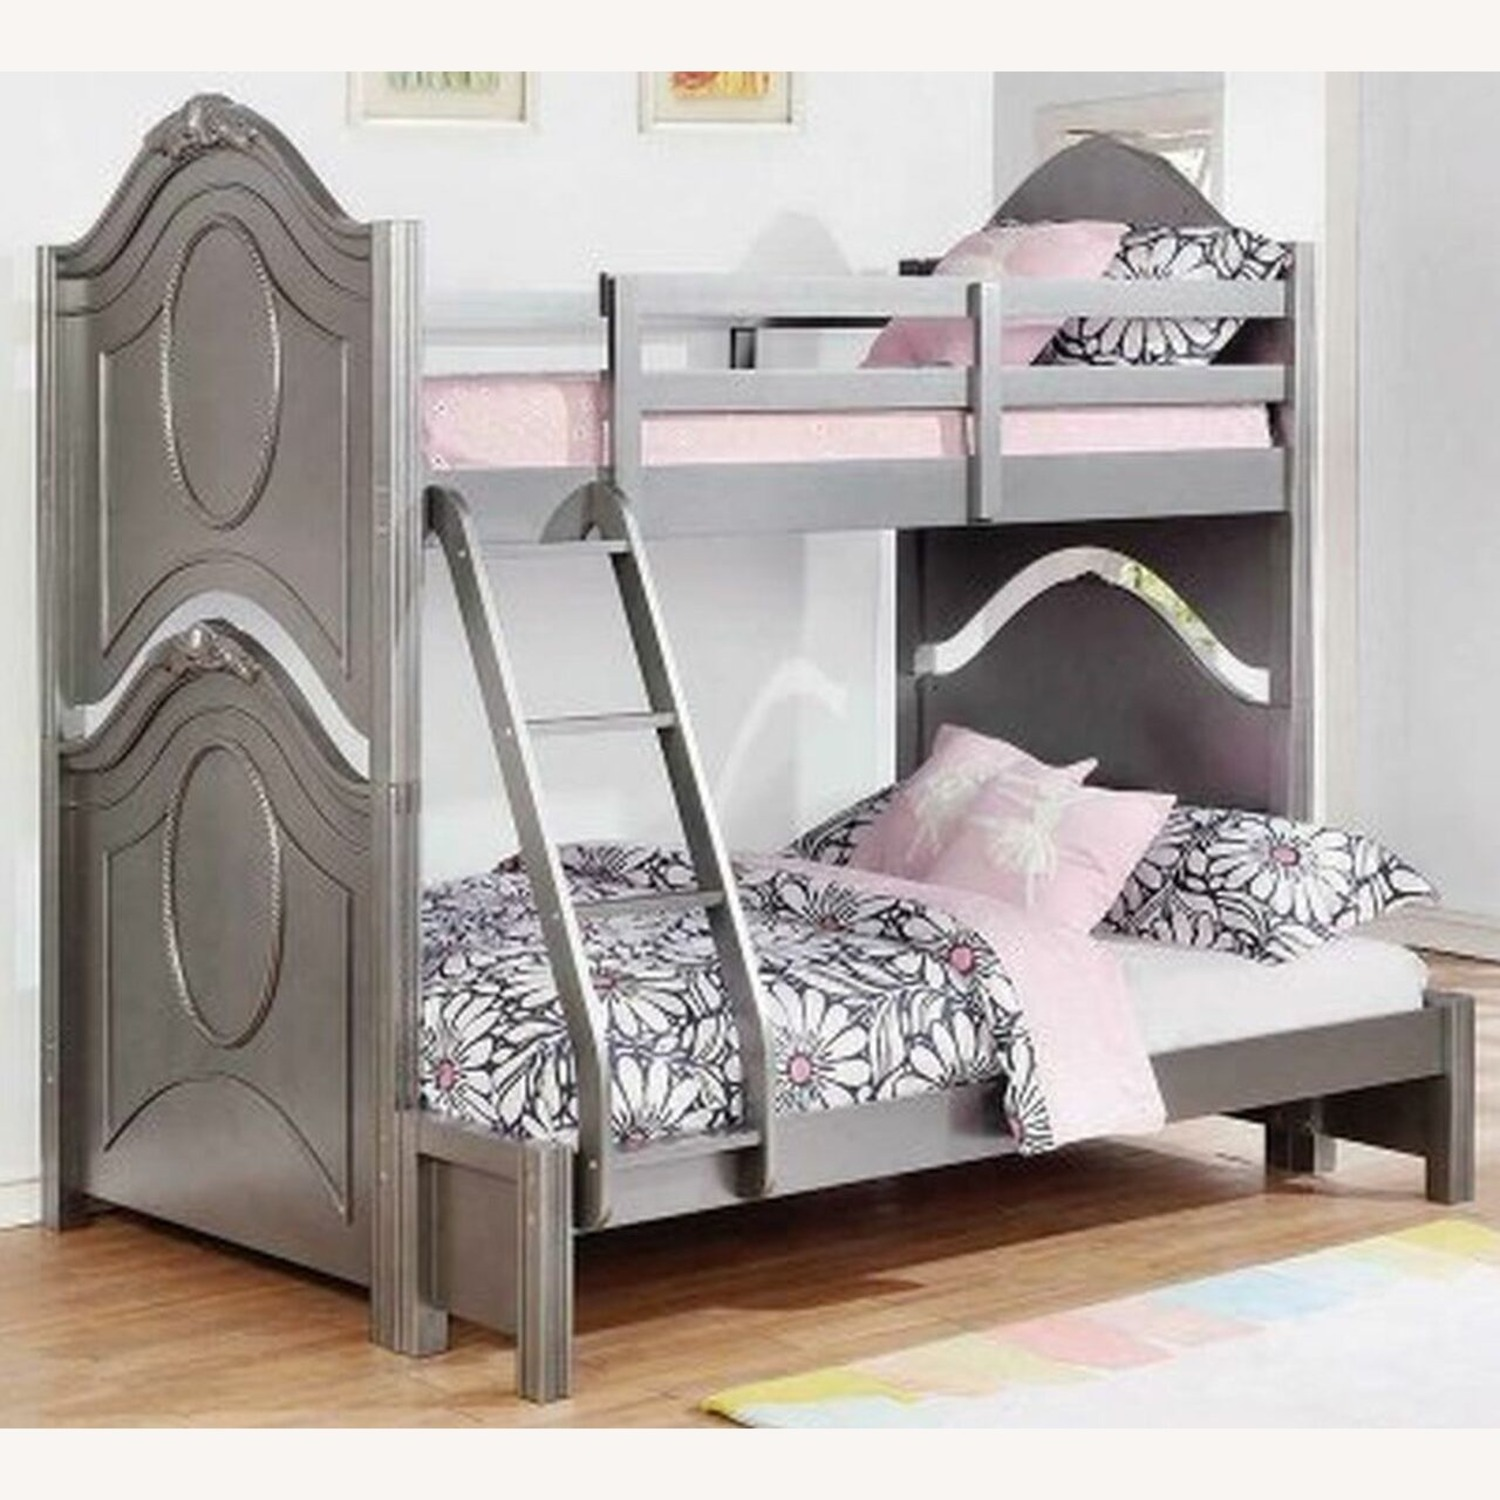 Twin Over Full Bunk Bed In Metallic Pewter Finish - image-1